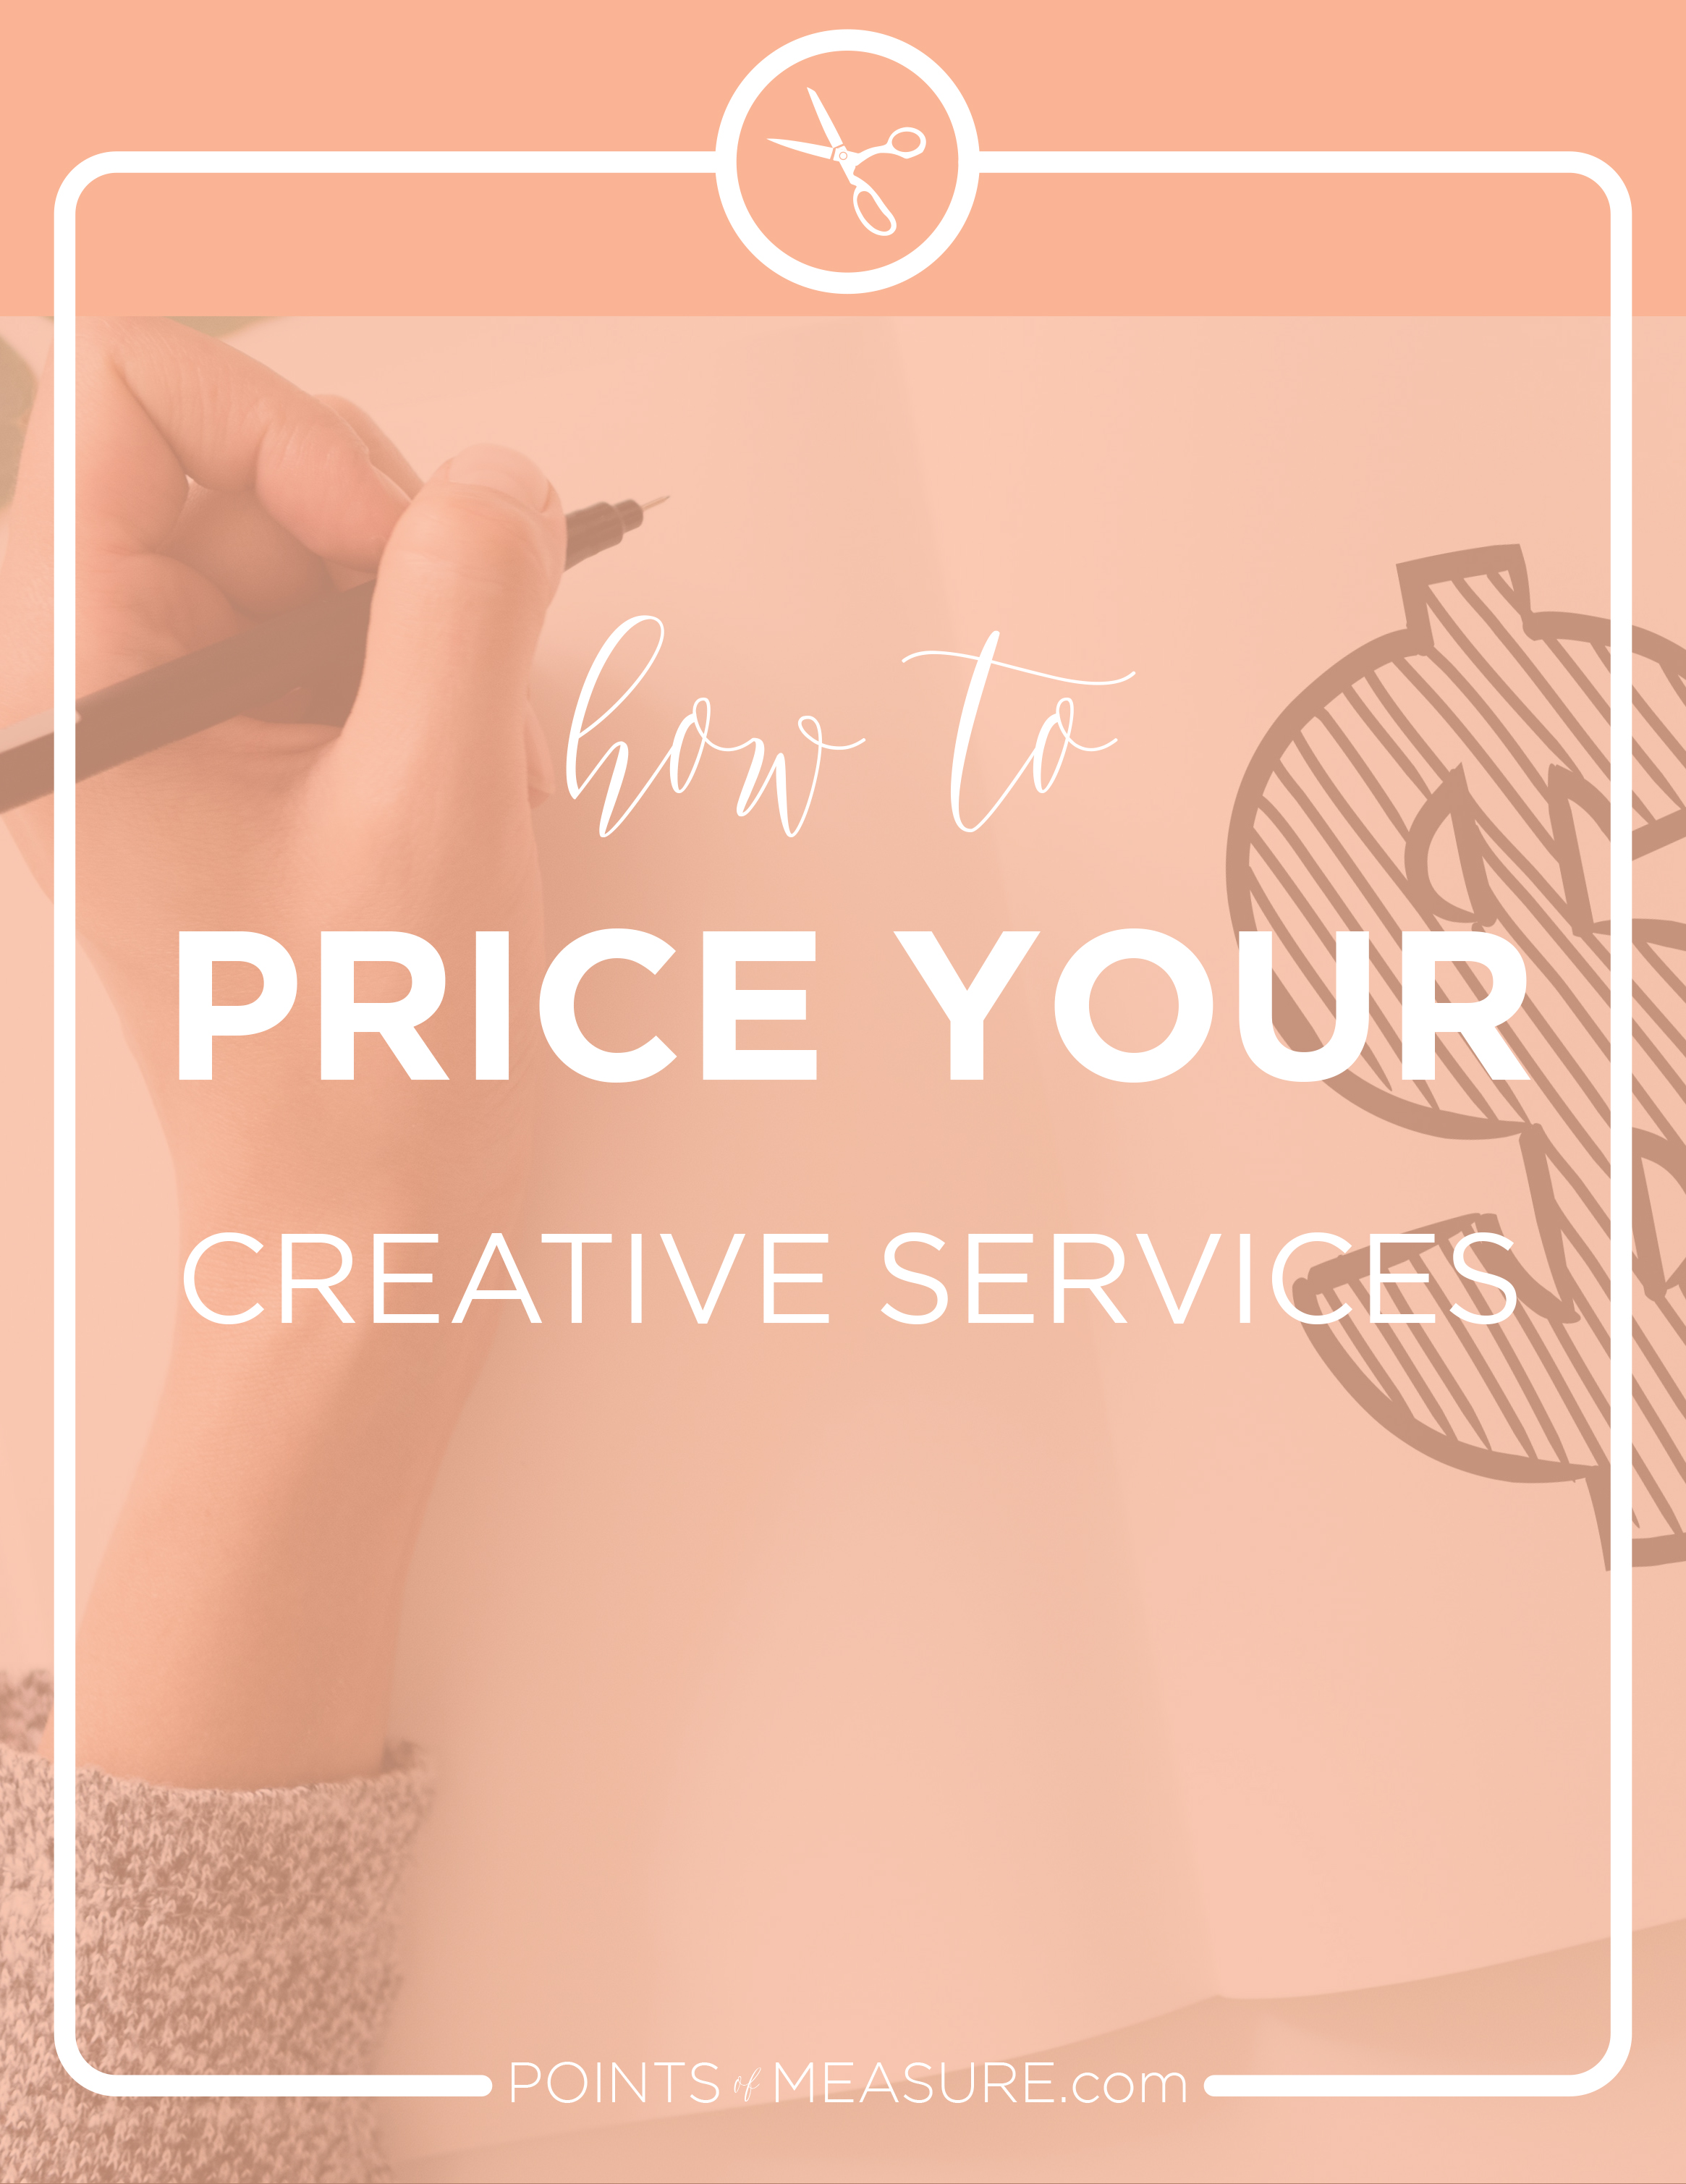 how-to-price-your-creative-services-points-of-measure.jpg